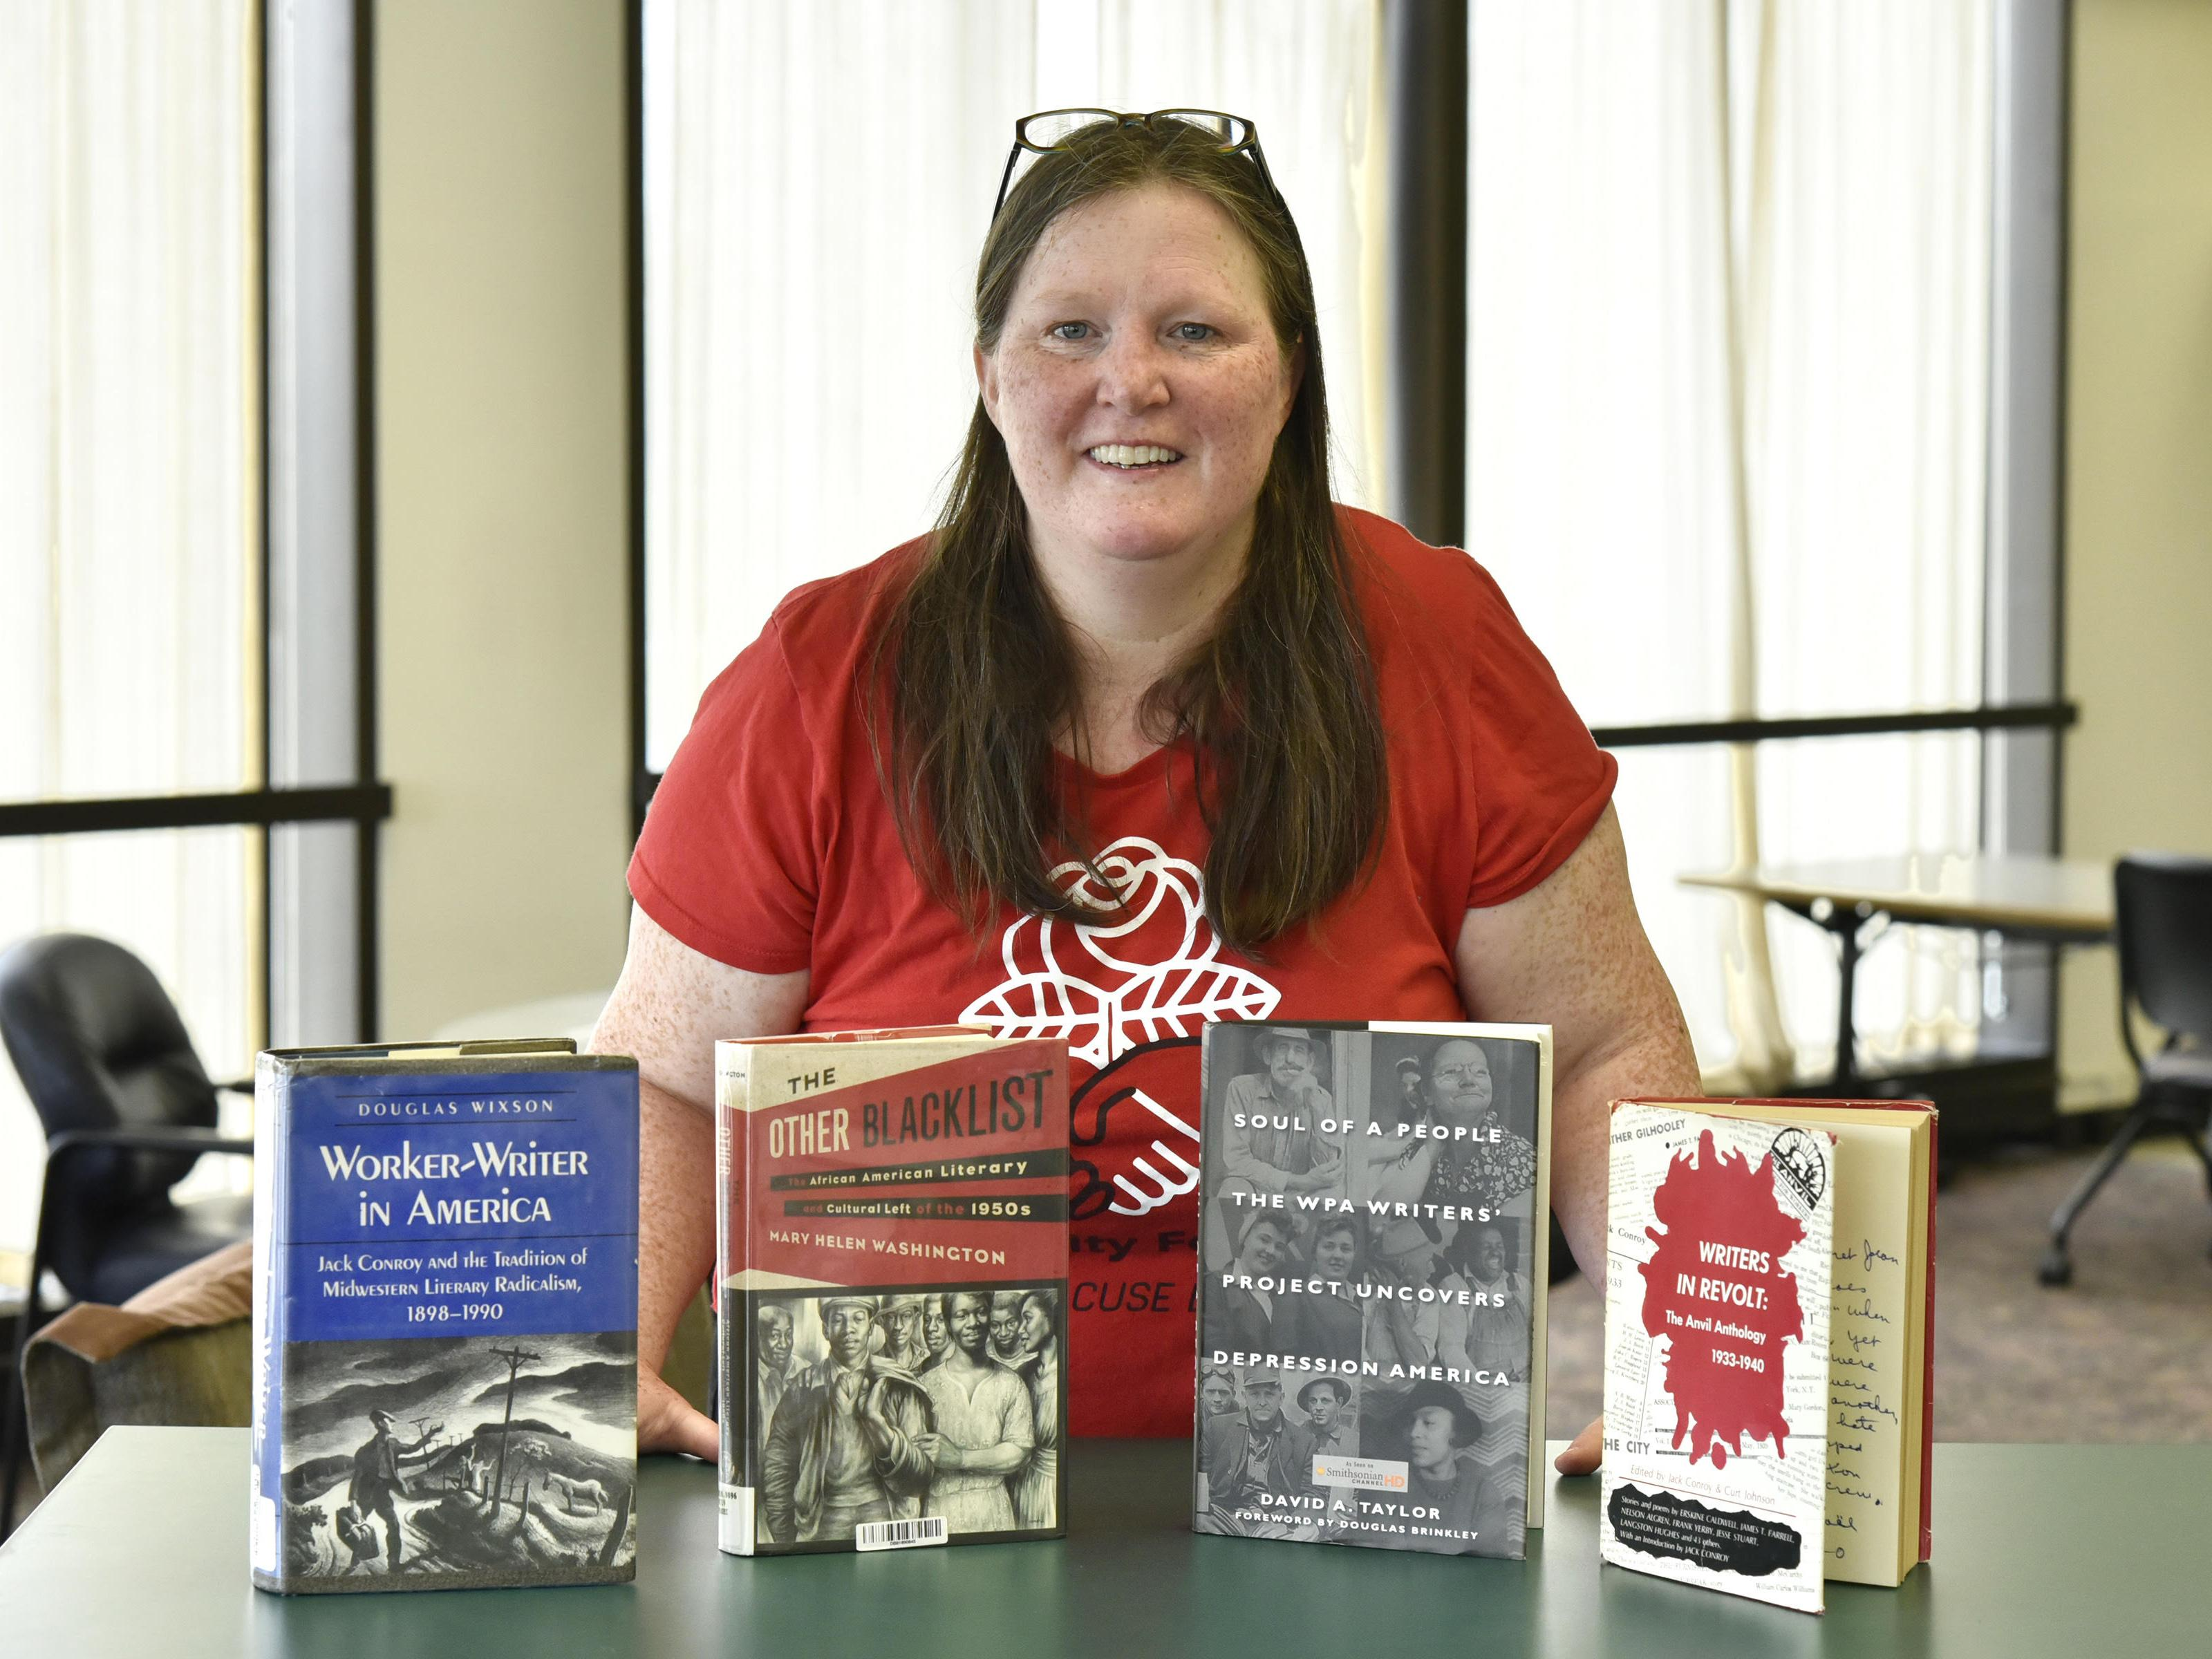 Maureen Curtin with books in Penfield Library